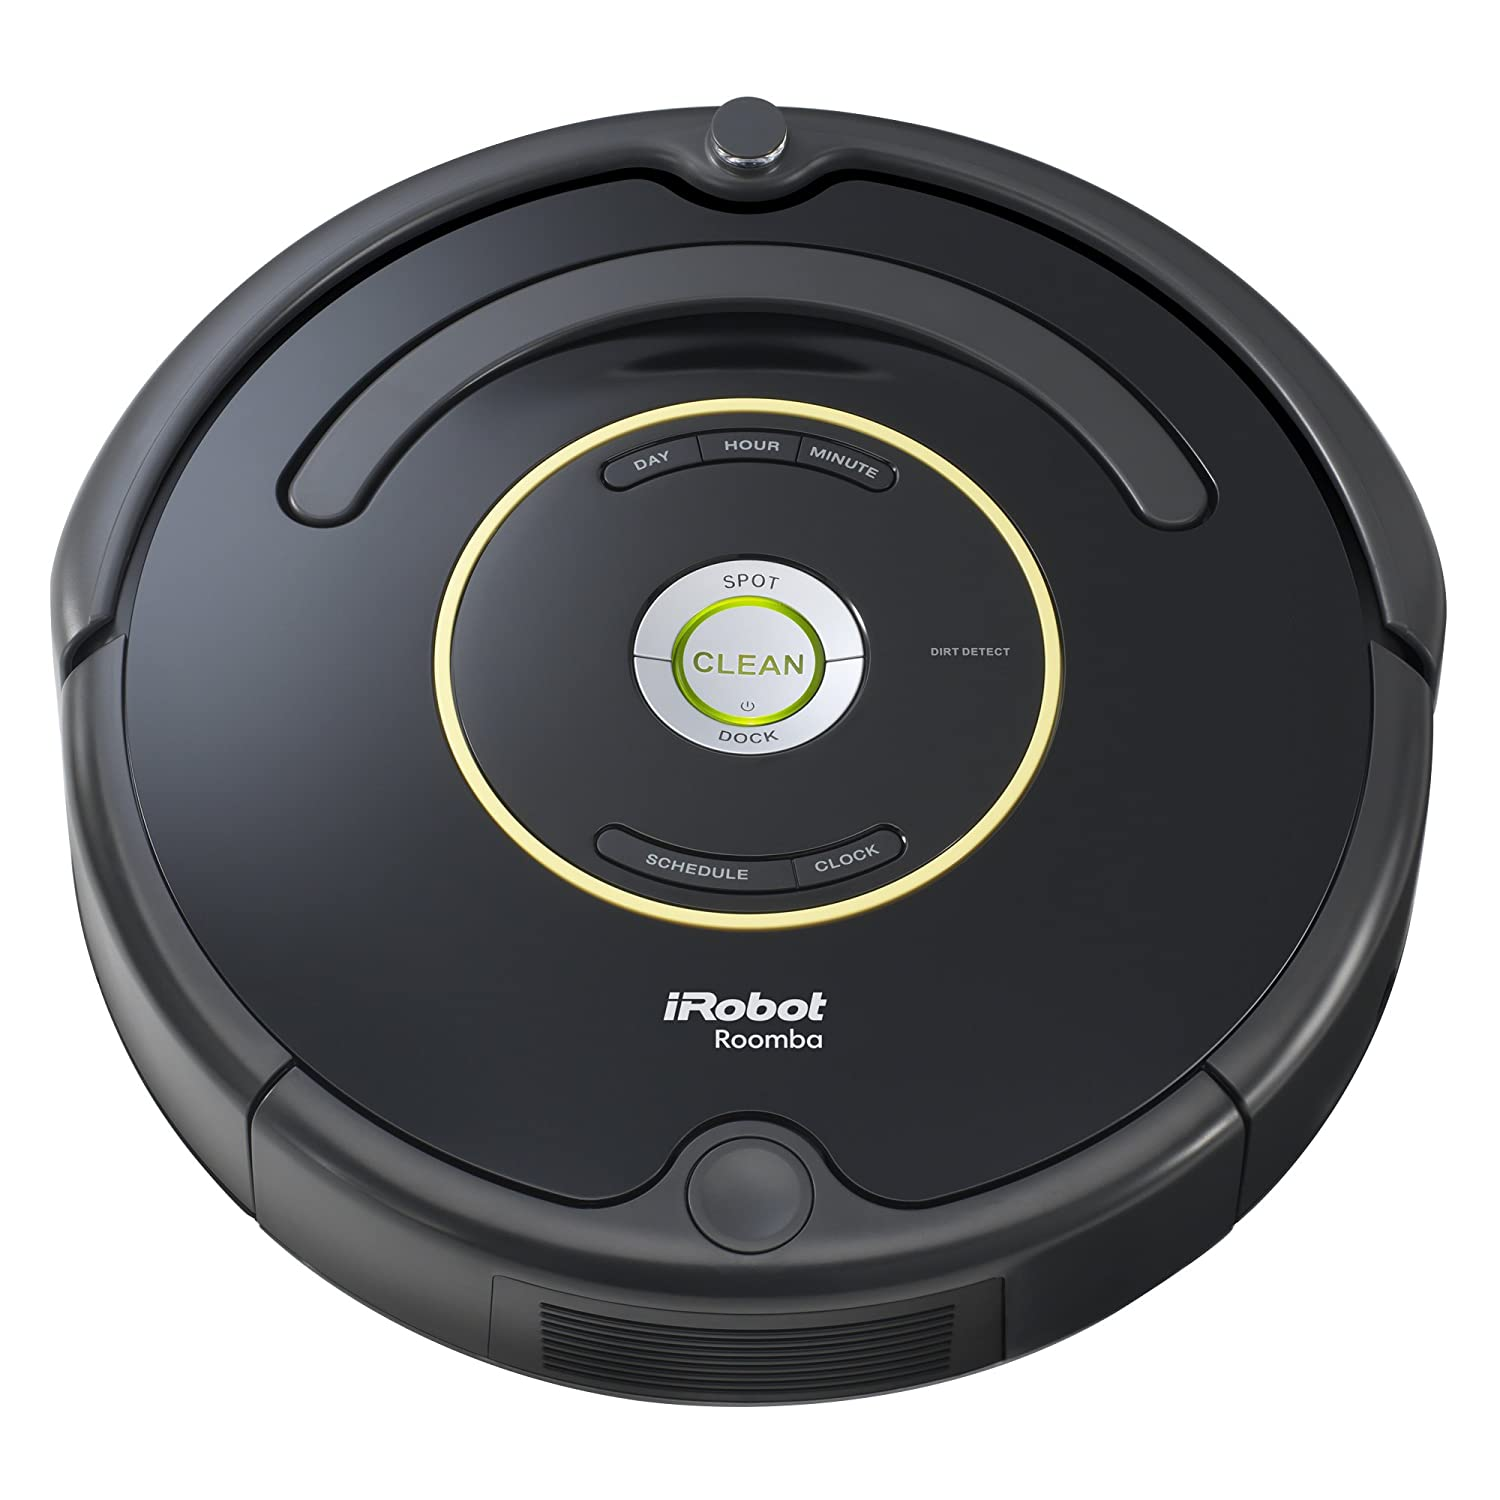 iRobot Roomba 650 Robot Vacuum cleaner Reviews